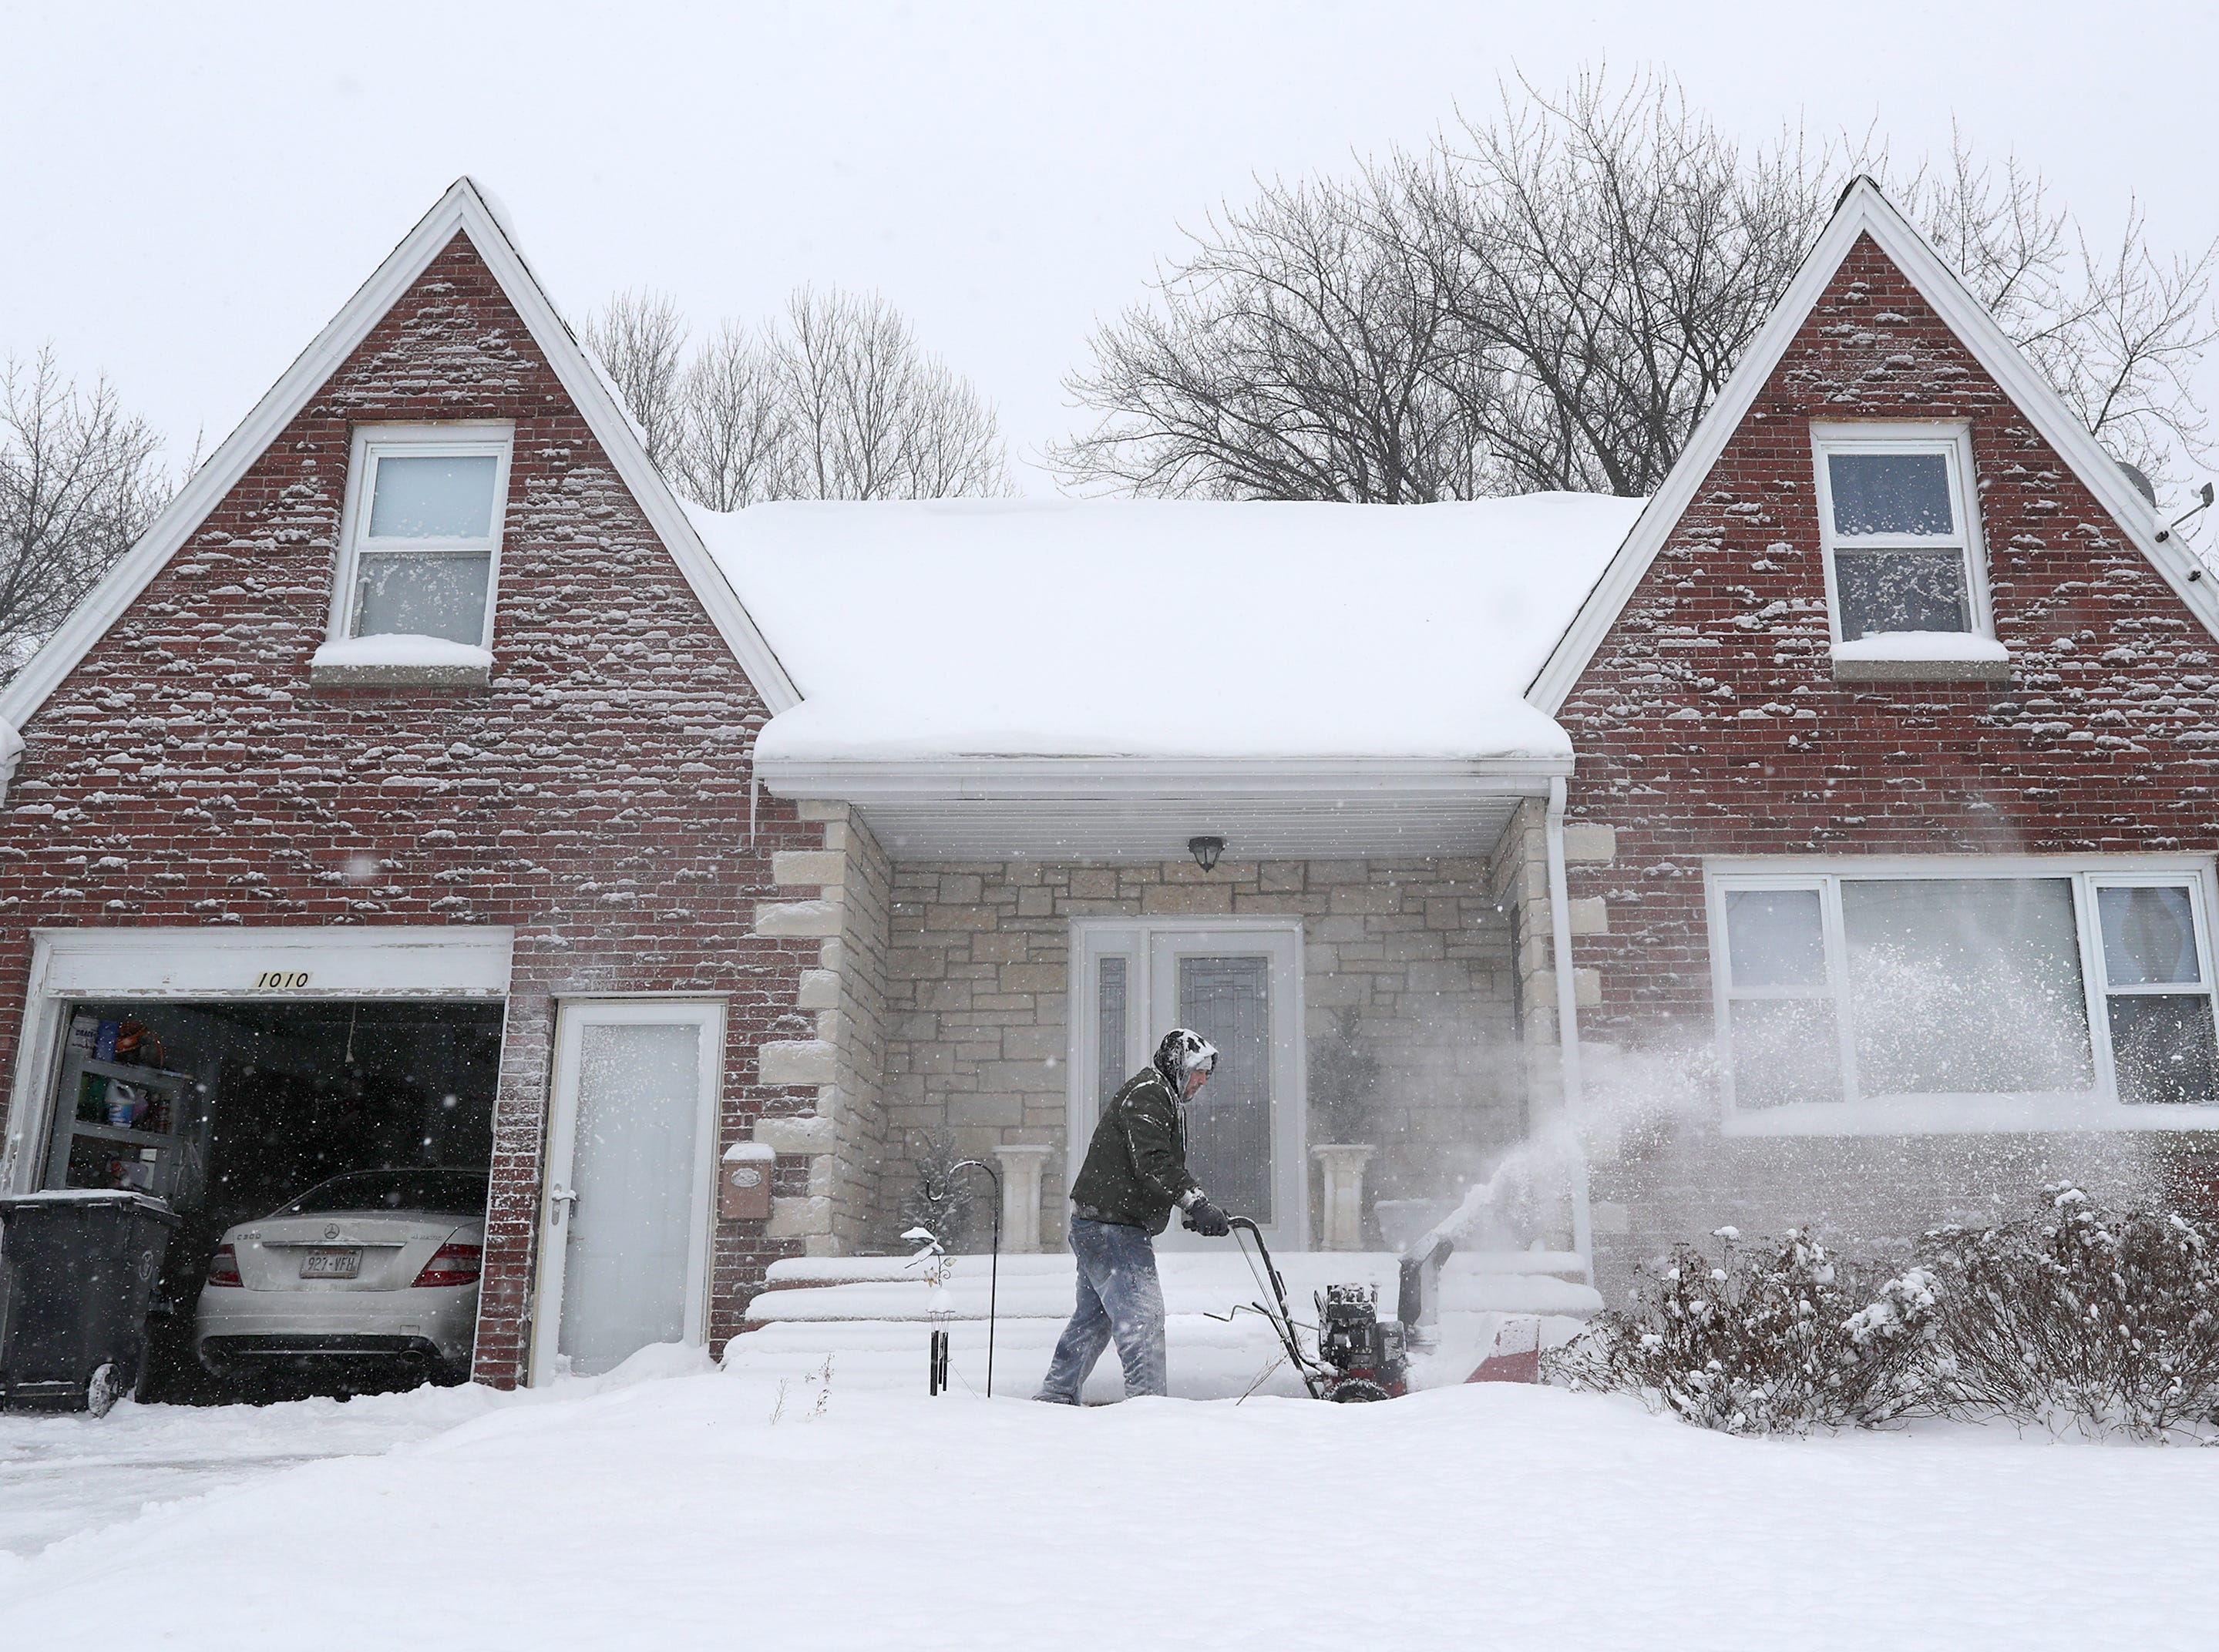 Jim Justin a clears a sidewalk as a winter storm moves through Wisconsin on Monday, Jan. 28, 2019, in Little Chute, Wis.